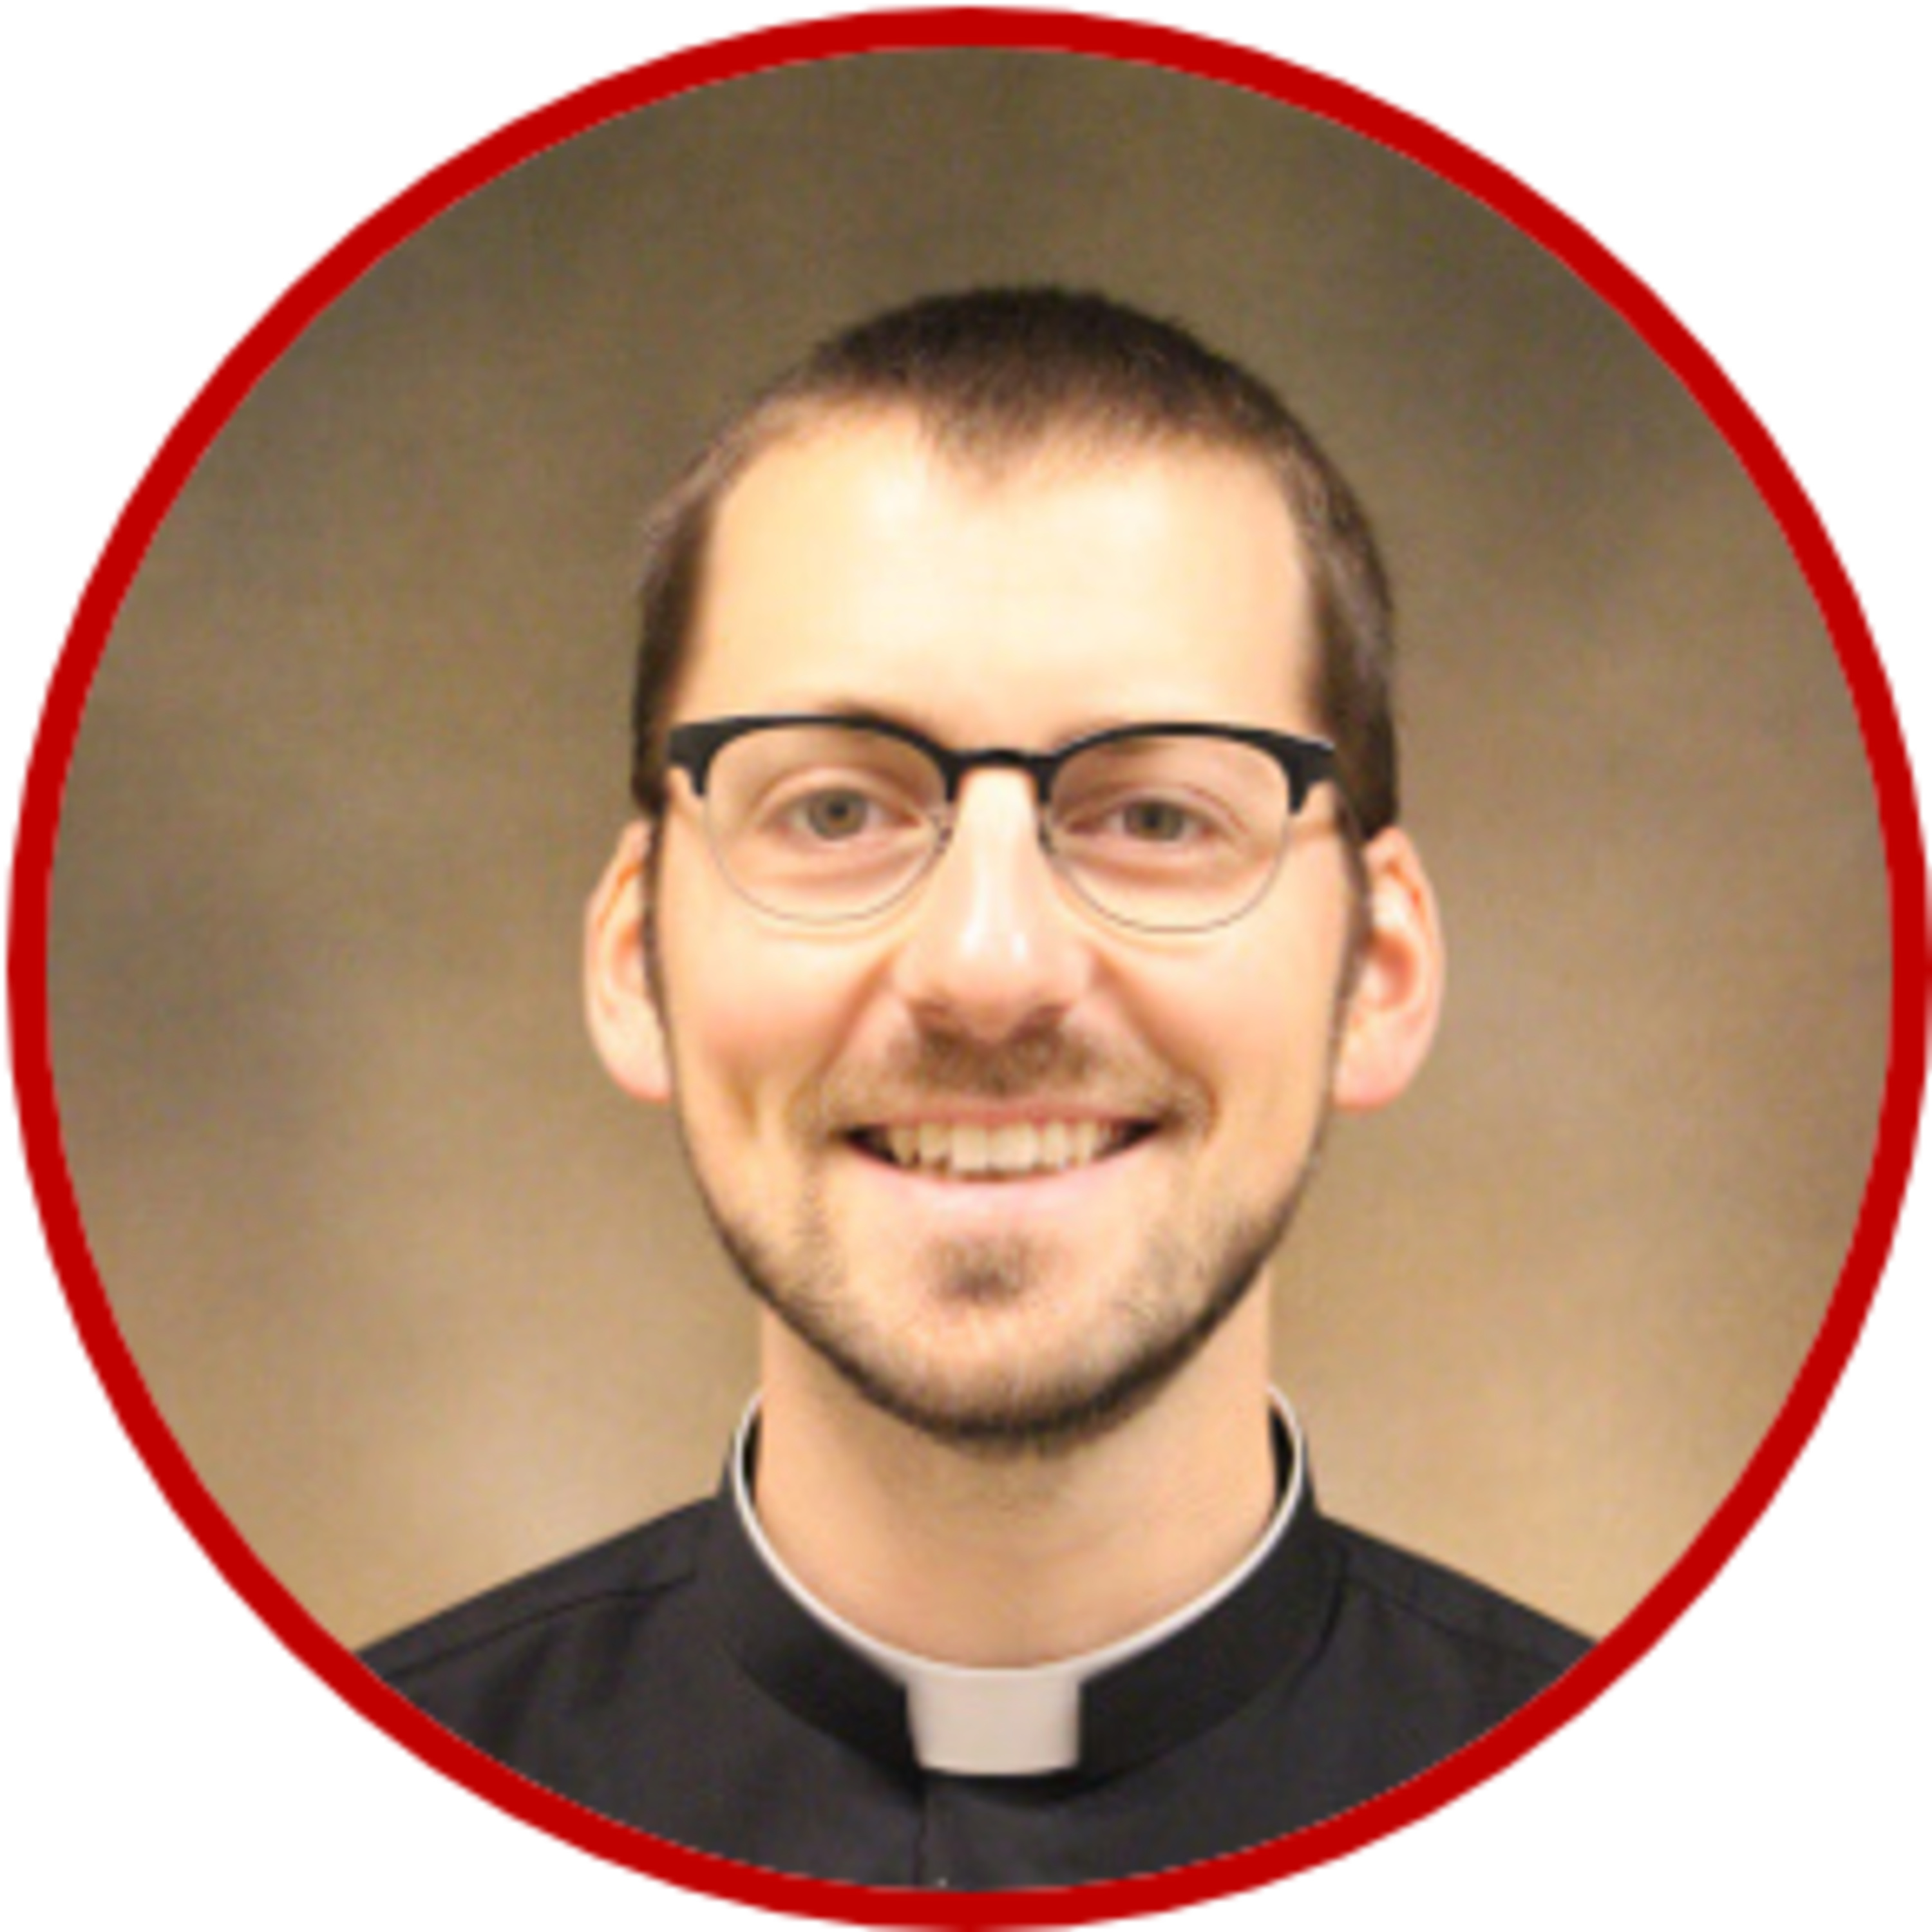 17th Sunday in Ordinary Time: Fr. Christian DeCarlo